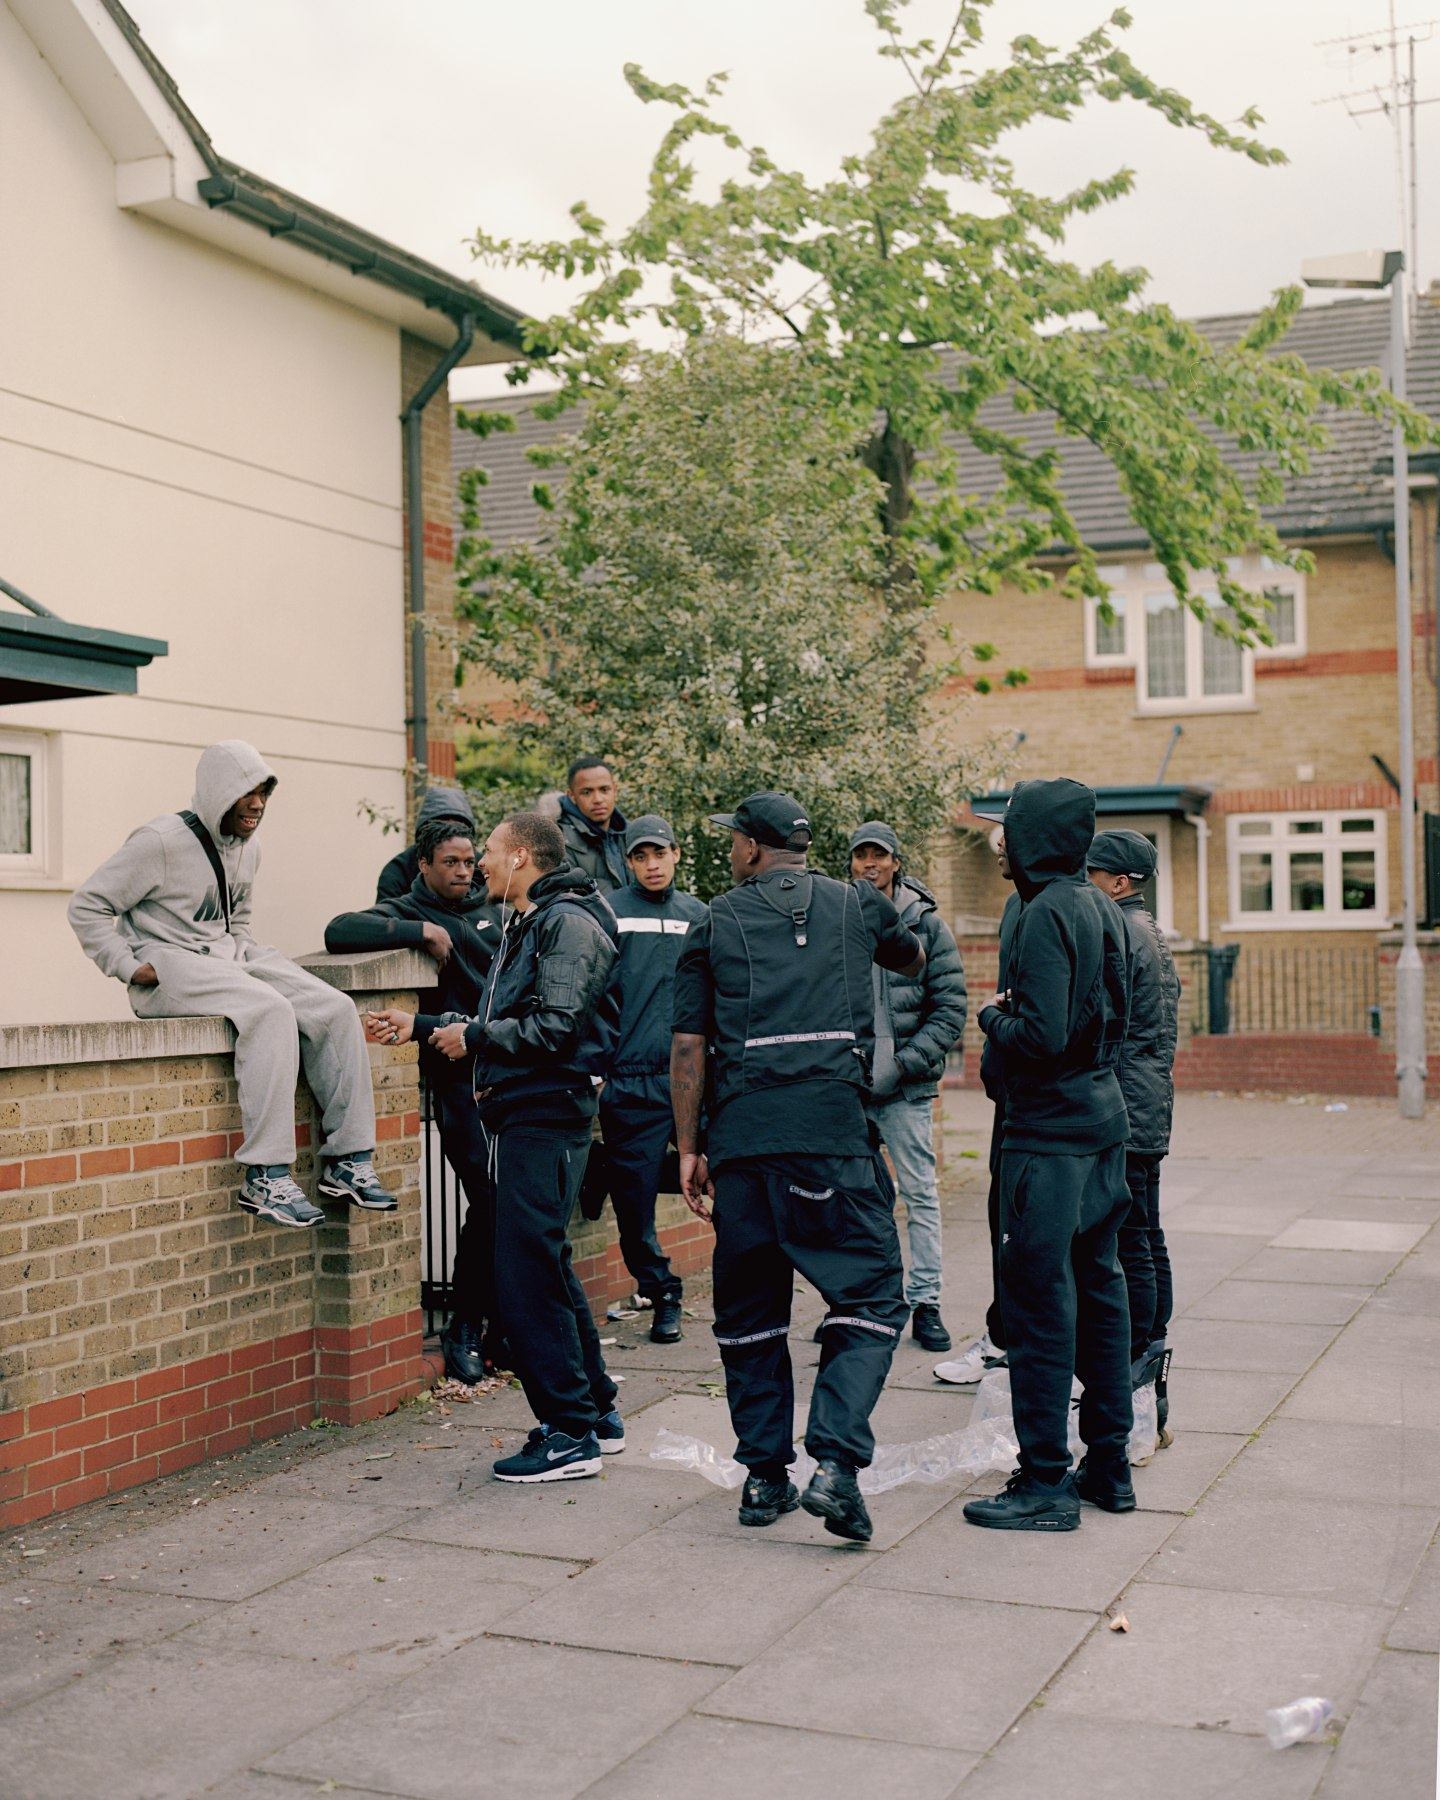 How One Photographer Won Skepta Over With Veggies